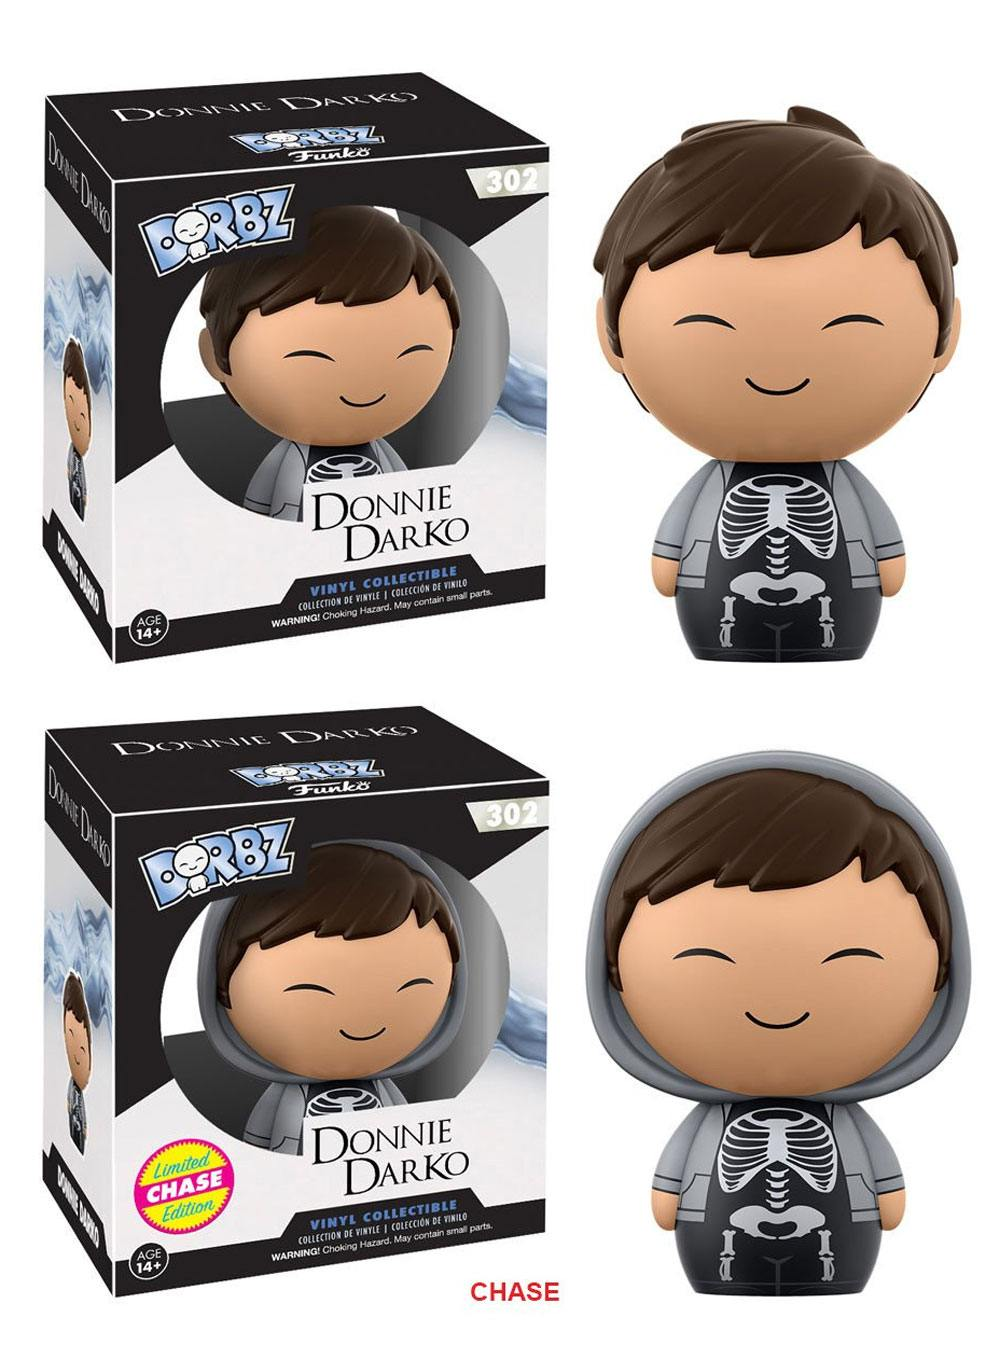 Donnie Darko Vinyl Sugar Dorbz Vinyl Figures Donnie Darko 8 cm Assortment (6)